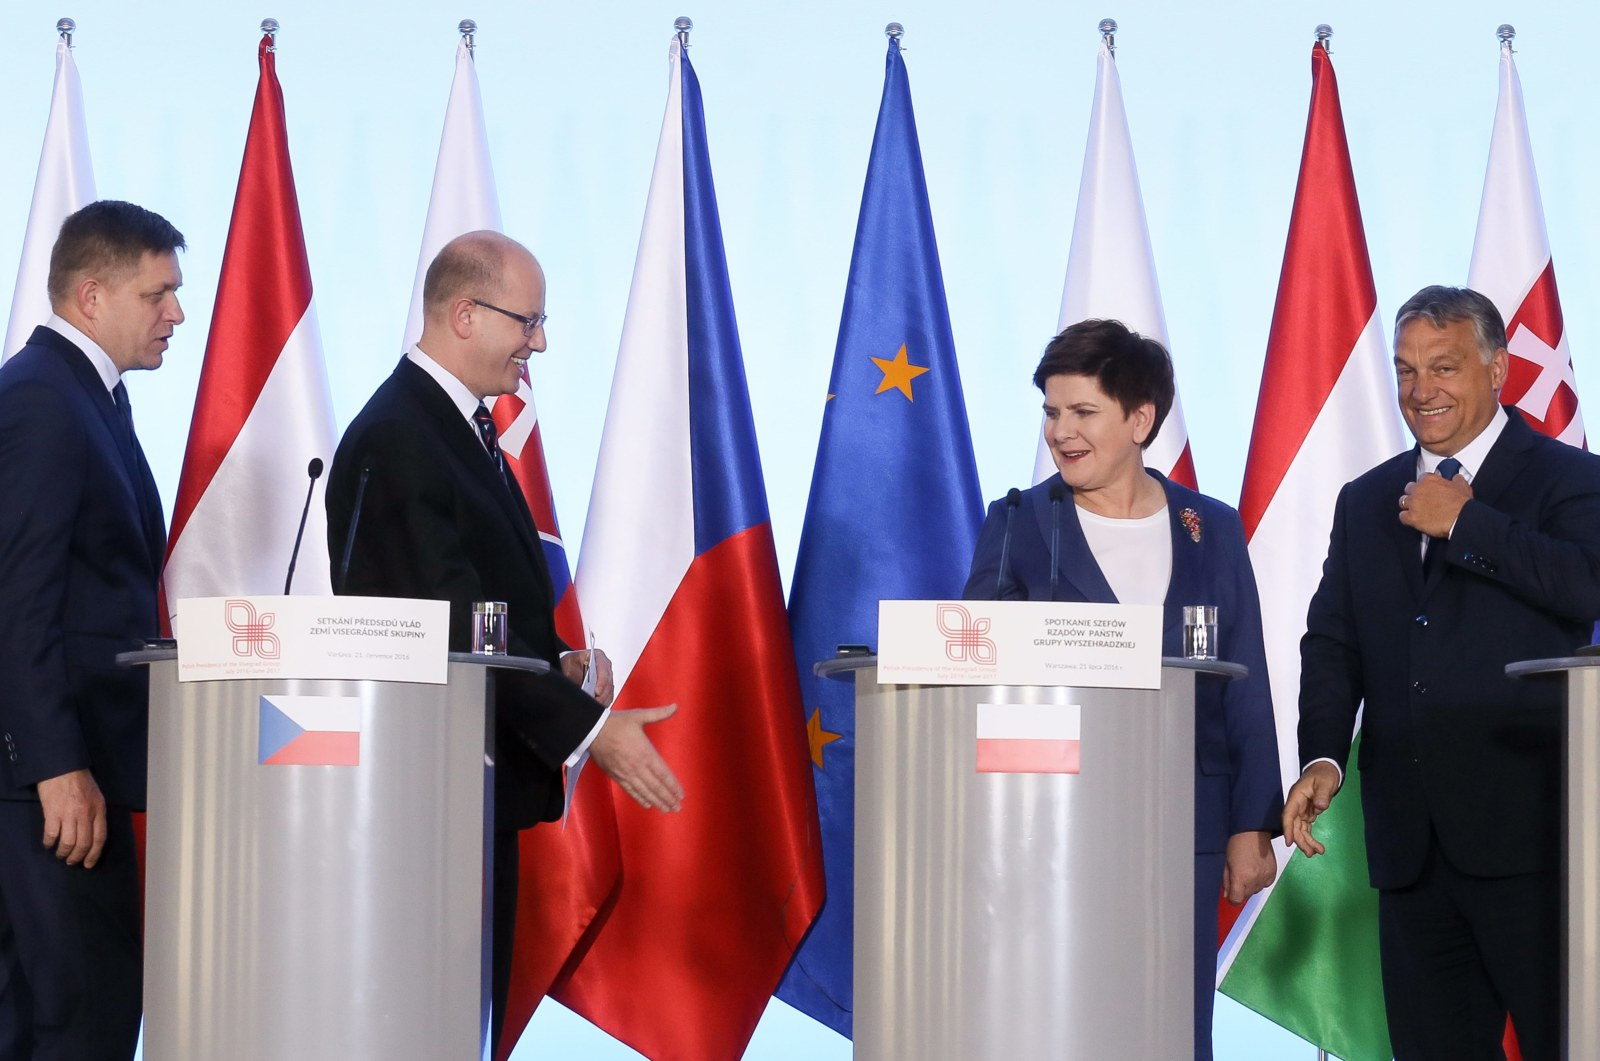 epa05434869 Polish Prime Minister Beata Szydlo (2-R), Hungarian Prime Minister Viktor Orban (R), Slovakia's Prime Minister Robert Fico (L) and Czech Prime Minister Bohuslav Sobotka (2-L) at a press conference after the Visegrad Group Prime Ministers meeting in Warsaw, Poland, 21 July 2016. The V4 prime ministers talked about the future of the European Union after the Brexit vote in Britain ahead of an informal EU summit in Bratislava in September that is expected to discuss the situation in Europe after Britain?s decision to leave the bloc. Poland and other V4 countries want to play a role in this discussion EPA/PAWEL SUPERNAK POLAND OUT